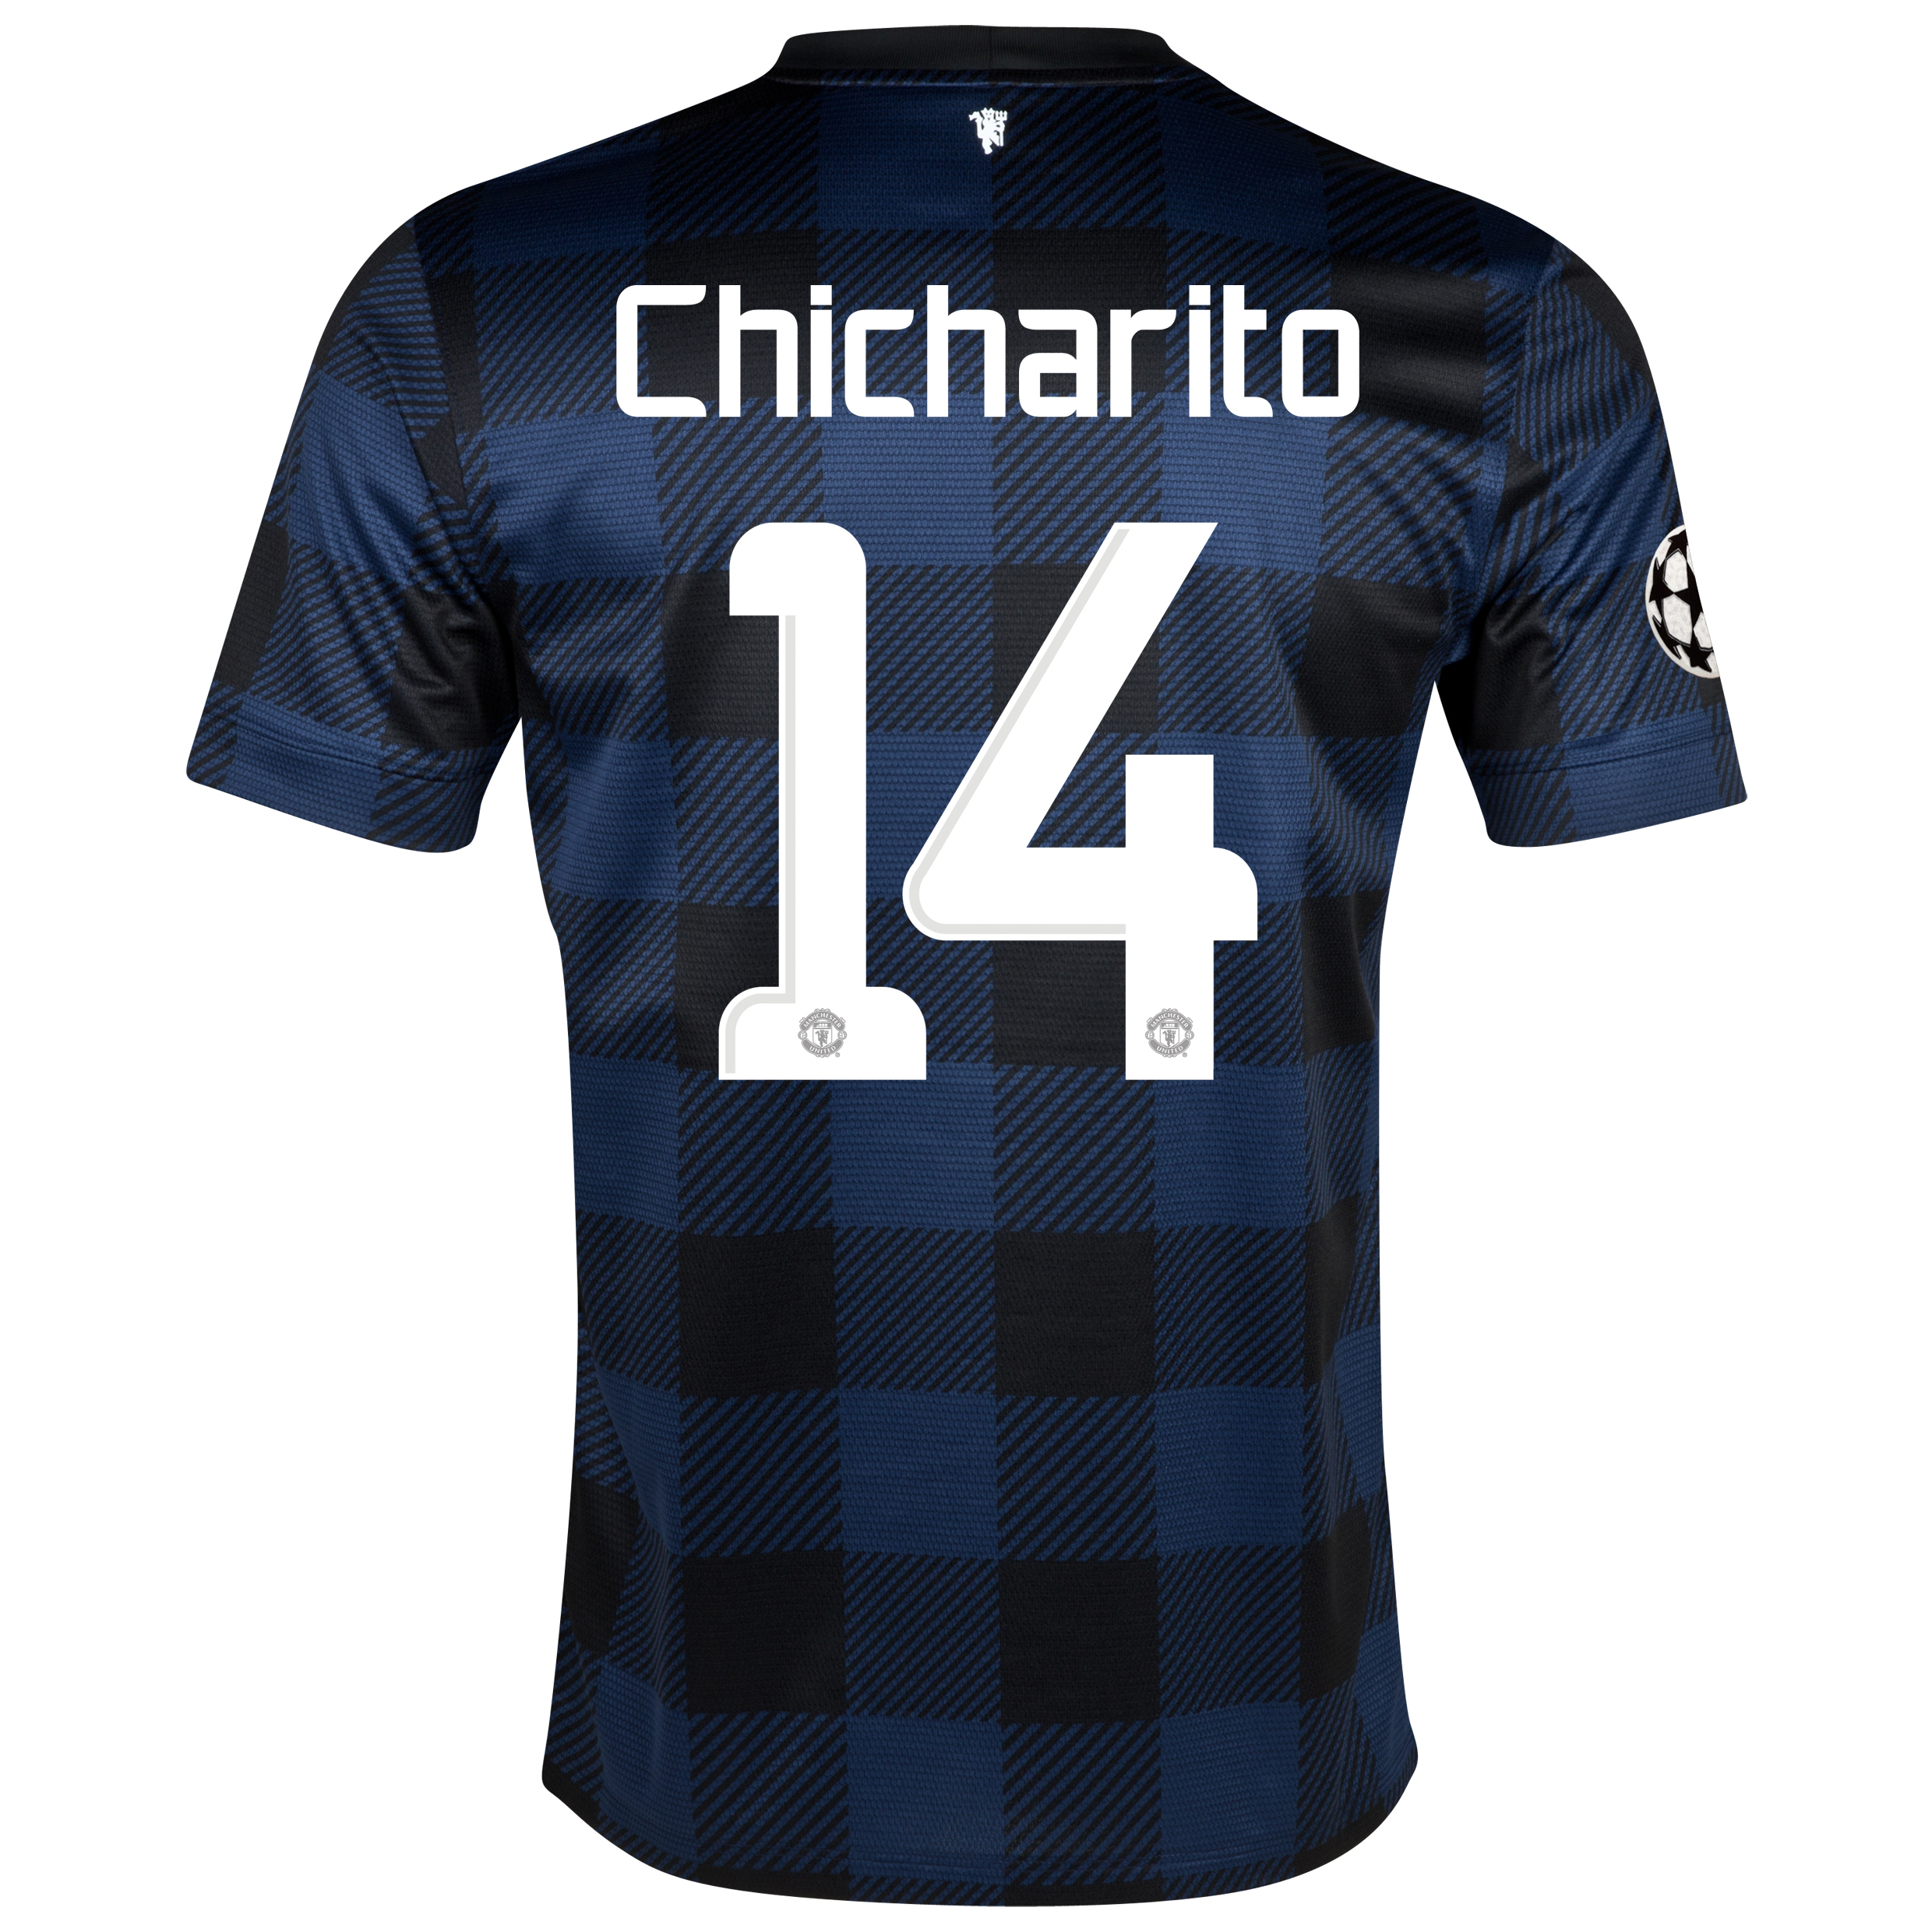 Manchester United UEFA Champions League Away Shirt 2013/14 - Kids with Chicharito 14 printing